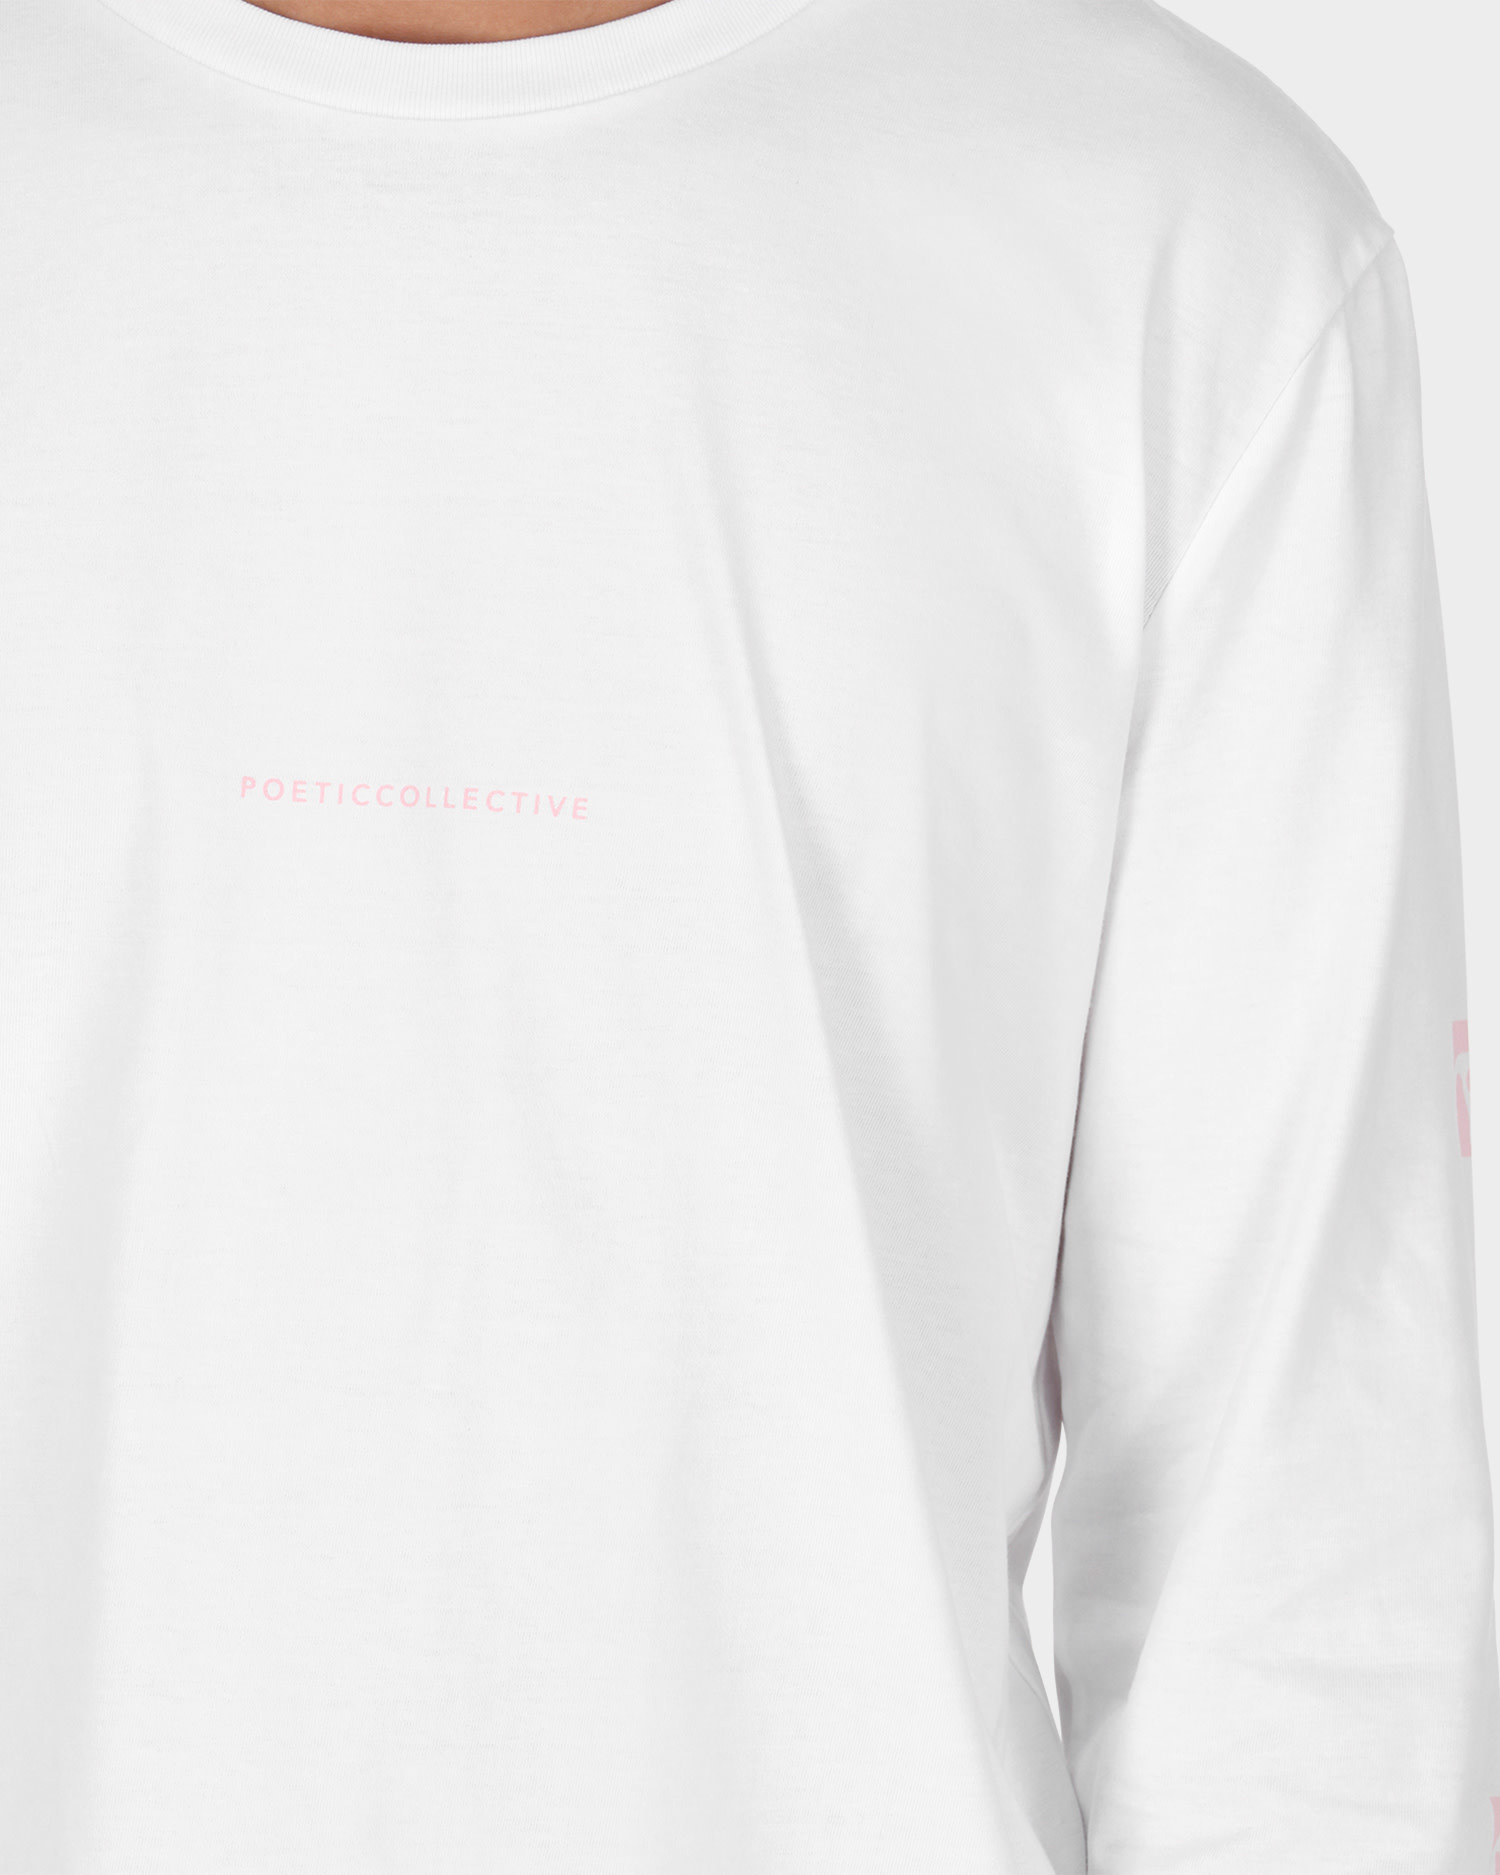 Poetic Collective Longsleeve T-shirt White